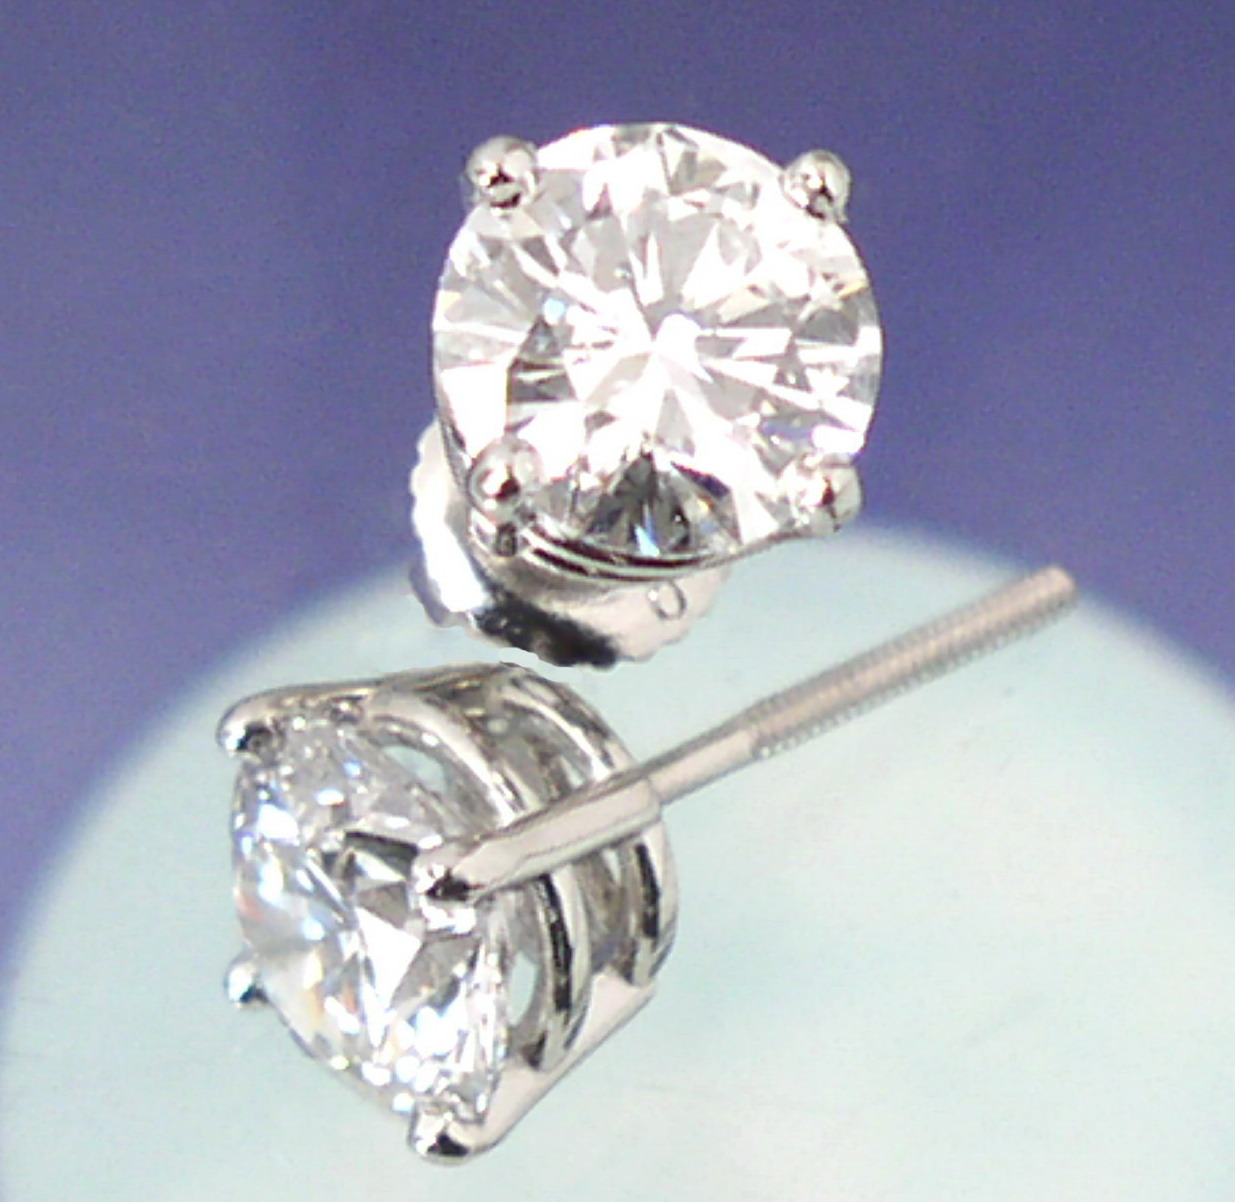 cut star com in pure canada brightest sirius polished jbacher the ca diamond siriusstar designed canadian mined pin world